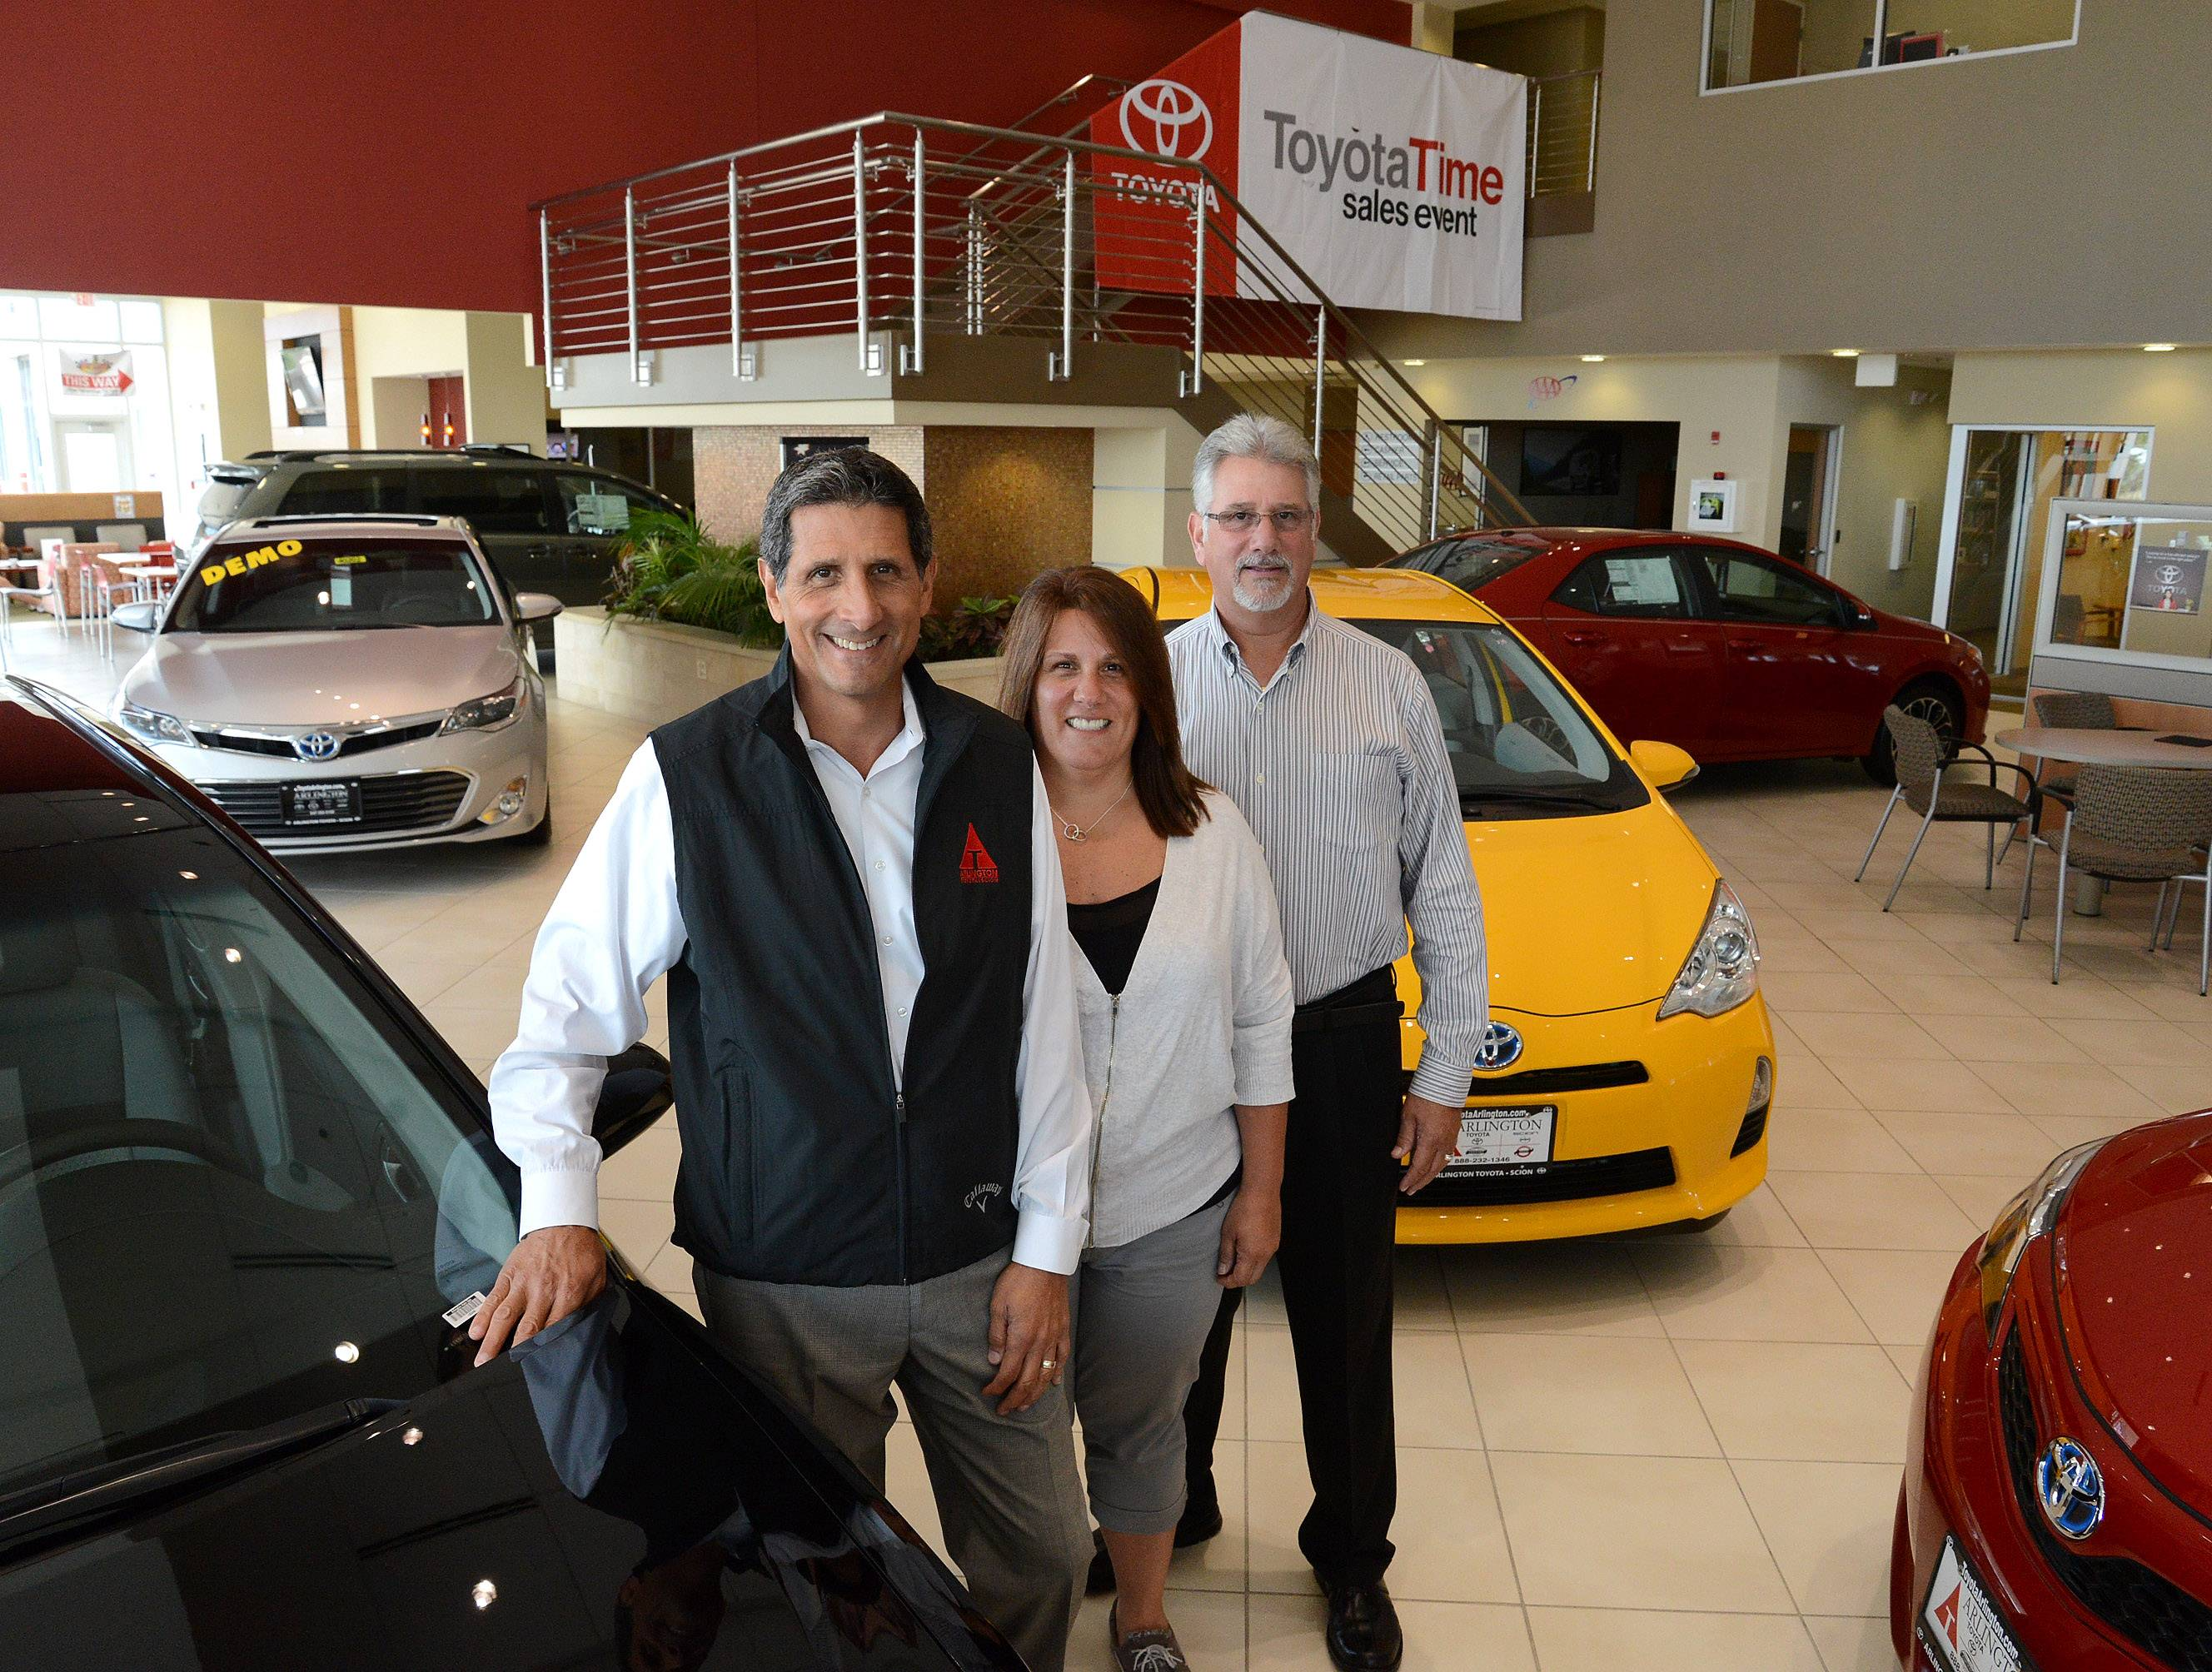 Arlington Automotive Group President Gary Vicari, left, is joined in the family business by siblings Tracey Vicari, human resources manager, and Scott Vicari, vice president, in the showroom of their Arlington Toyota/Scion in Palatine.